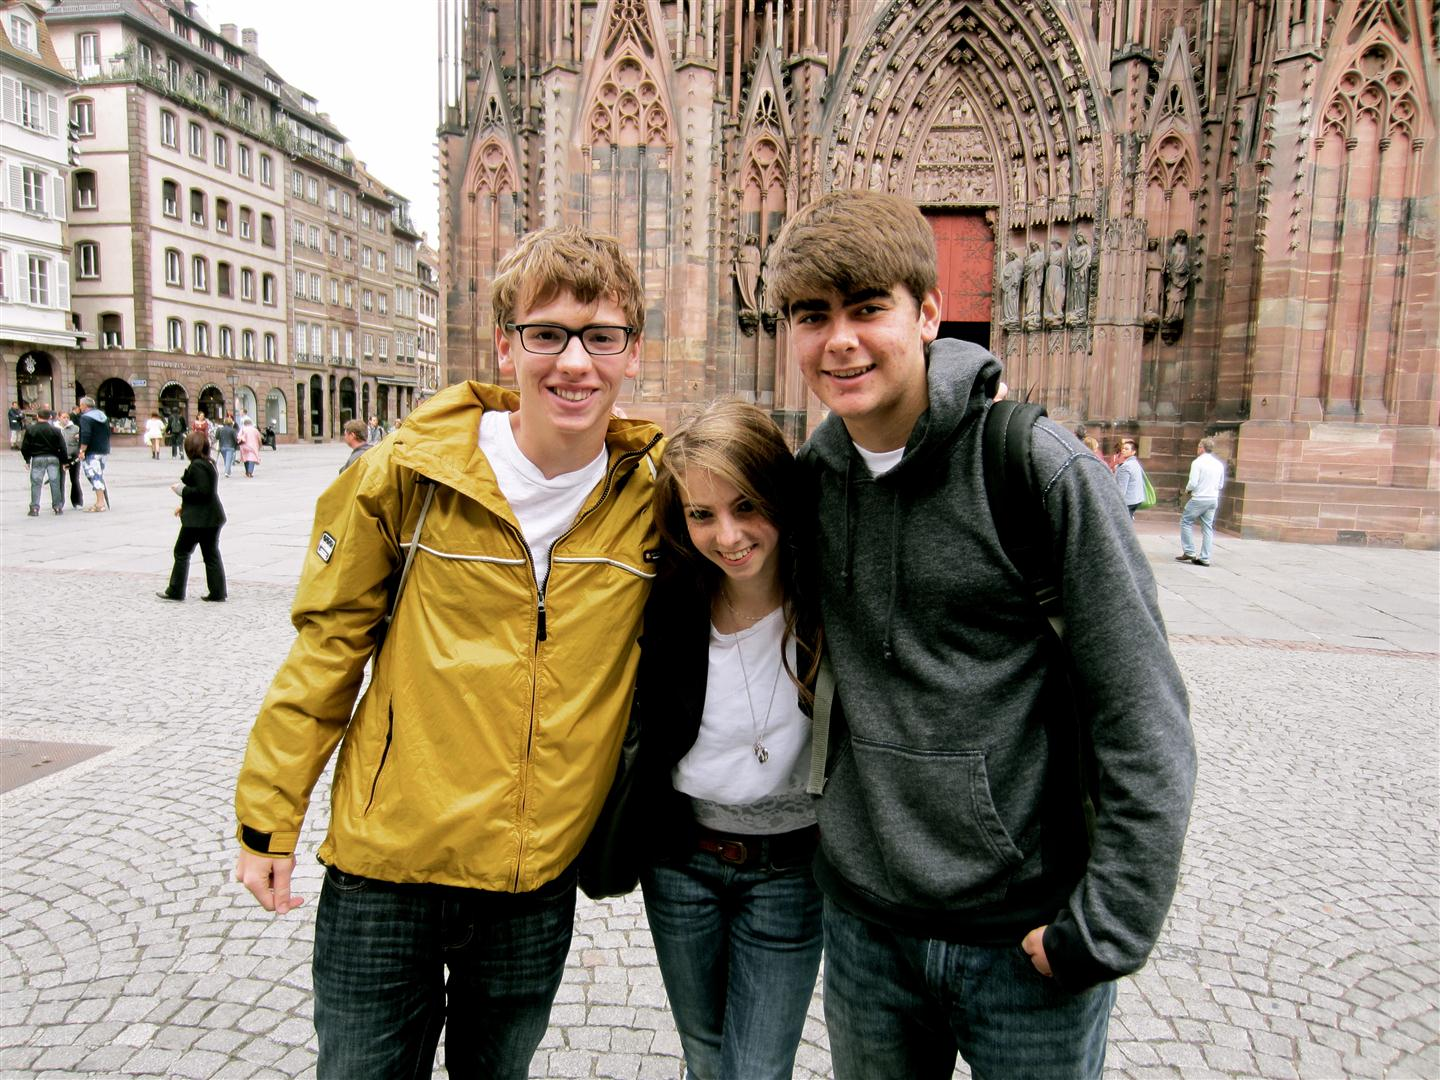 Keenan, left, enjoys a stop at Strasbourg Cathedral with his French host sister and a fellow Putney student.